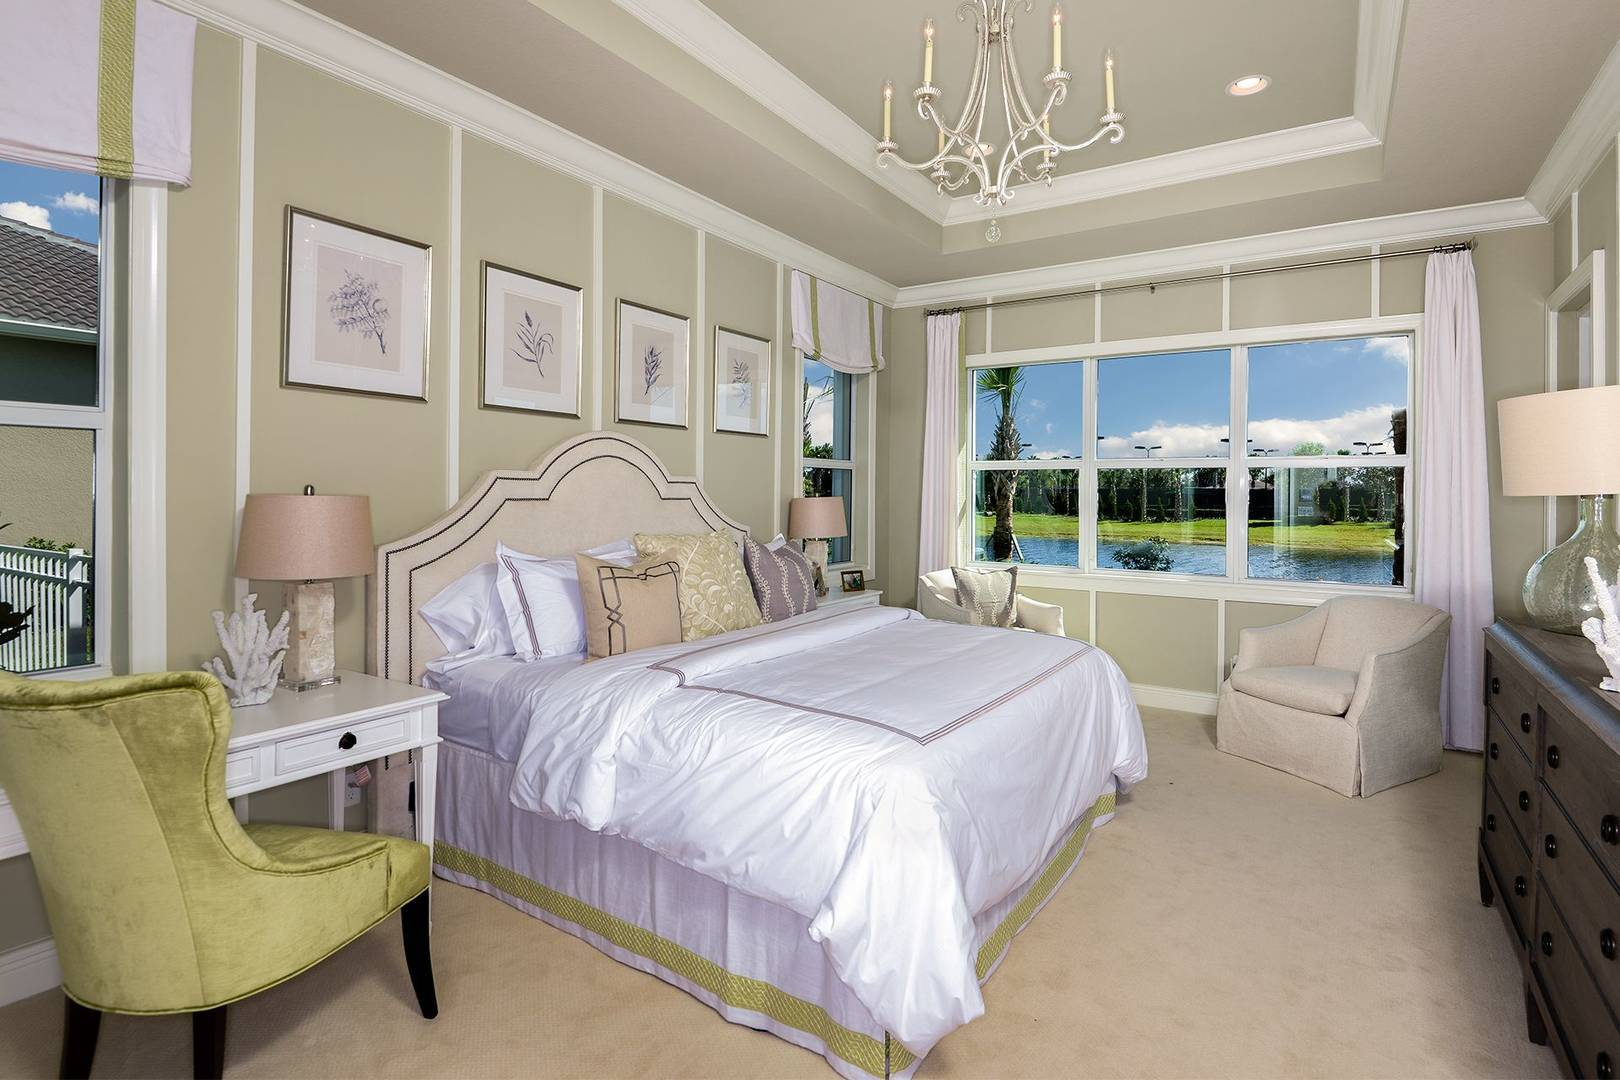 Bedroom featured in the Genova By GL Homes in Tampa-St. Petersburg, FL